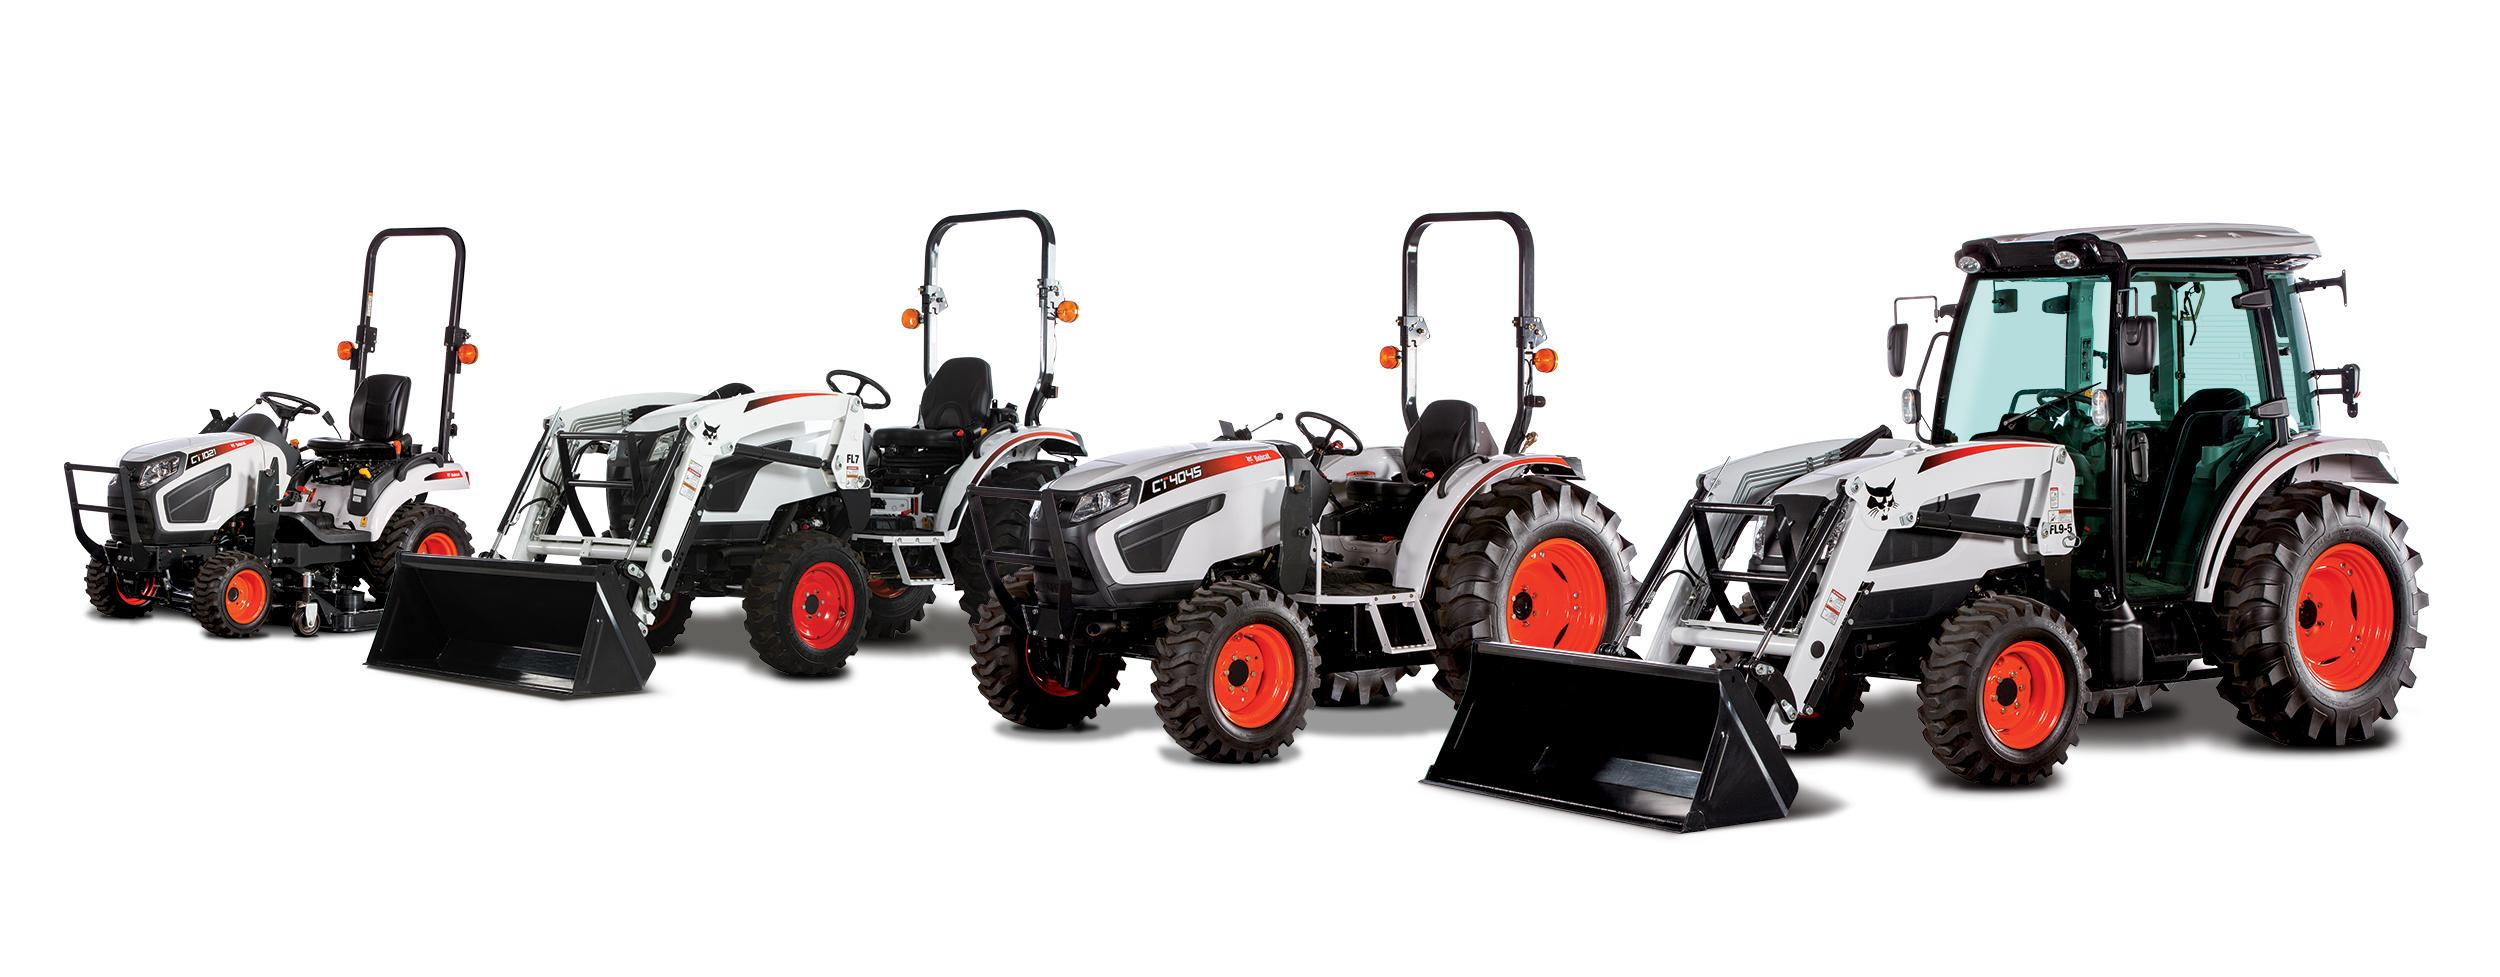 Bobcat Compact Tractor Lineup With Tractor Attachments.